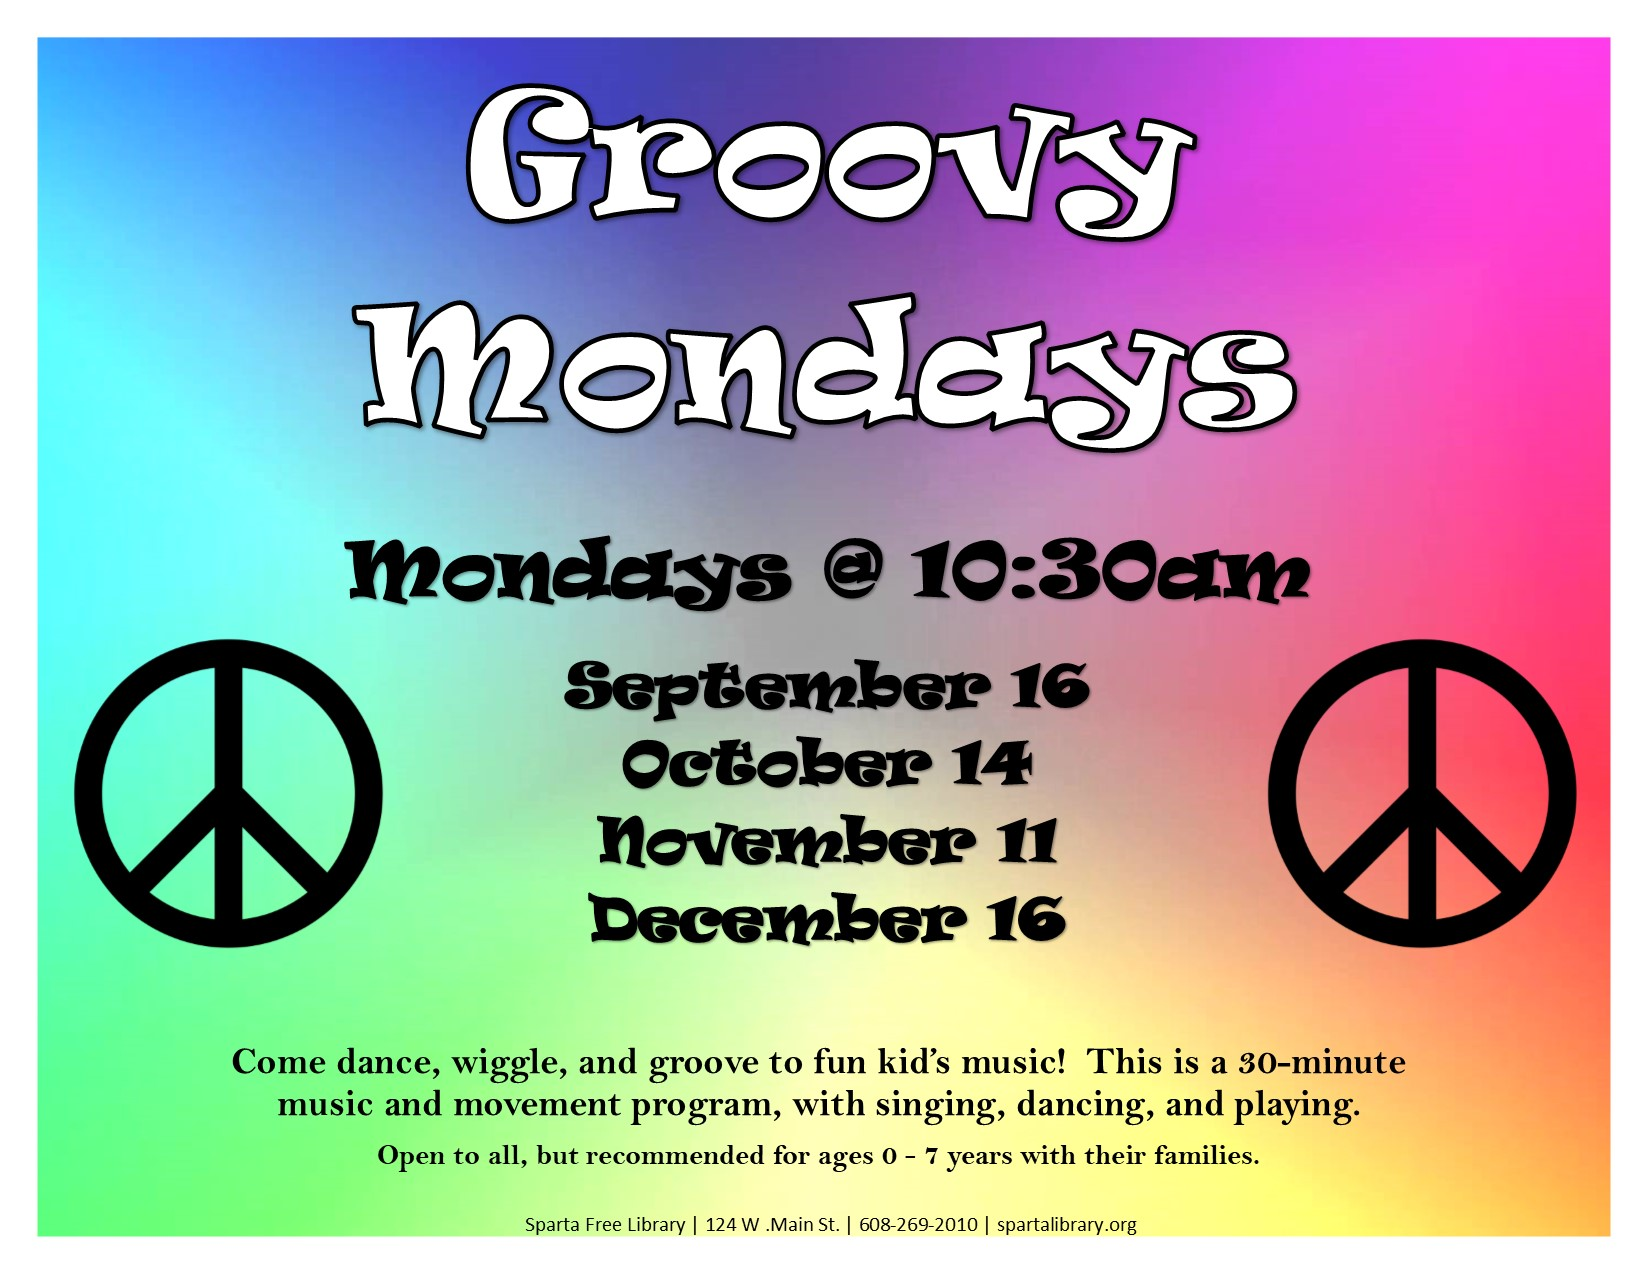 Groovy Mondays @ Sparta Free Library